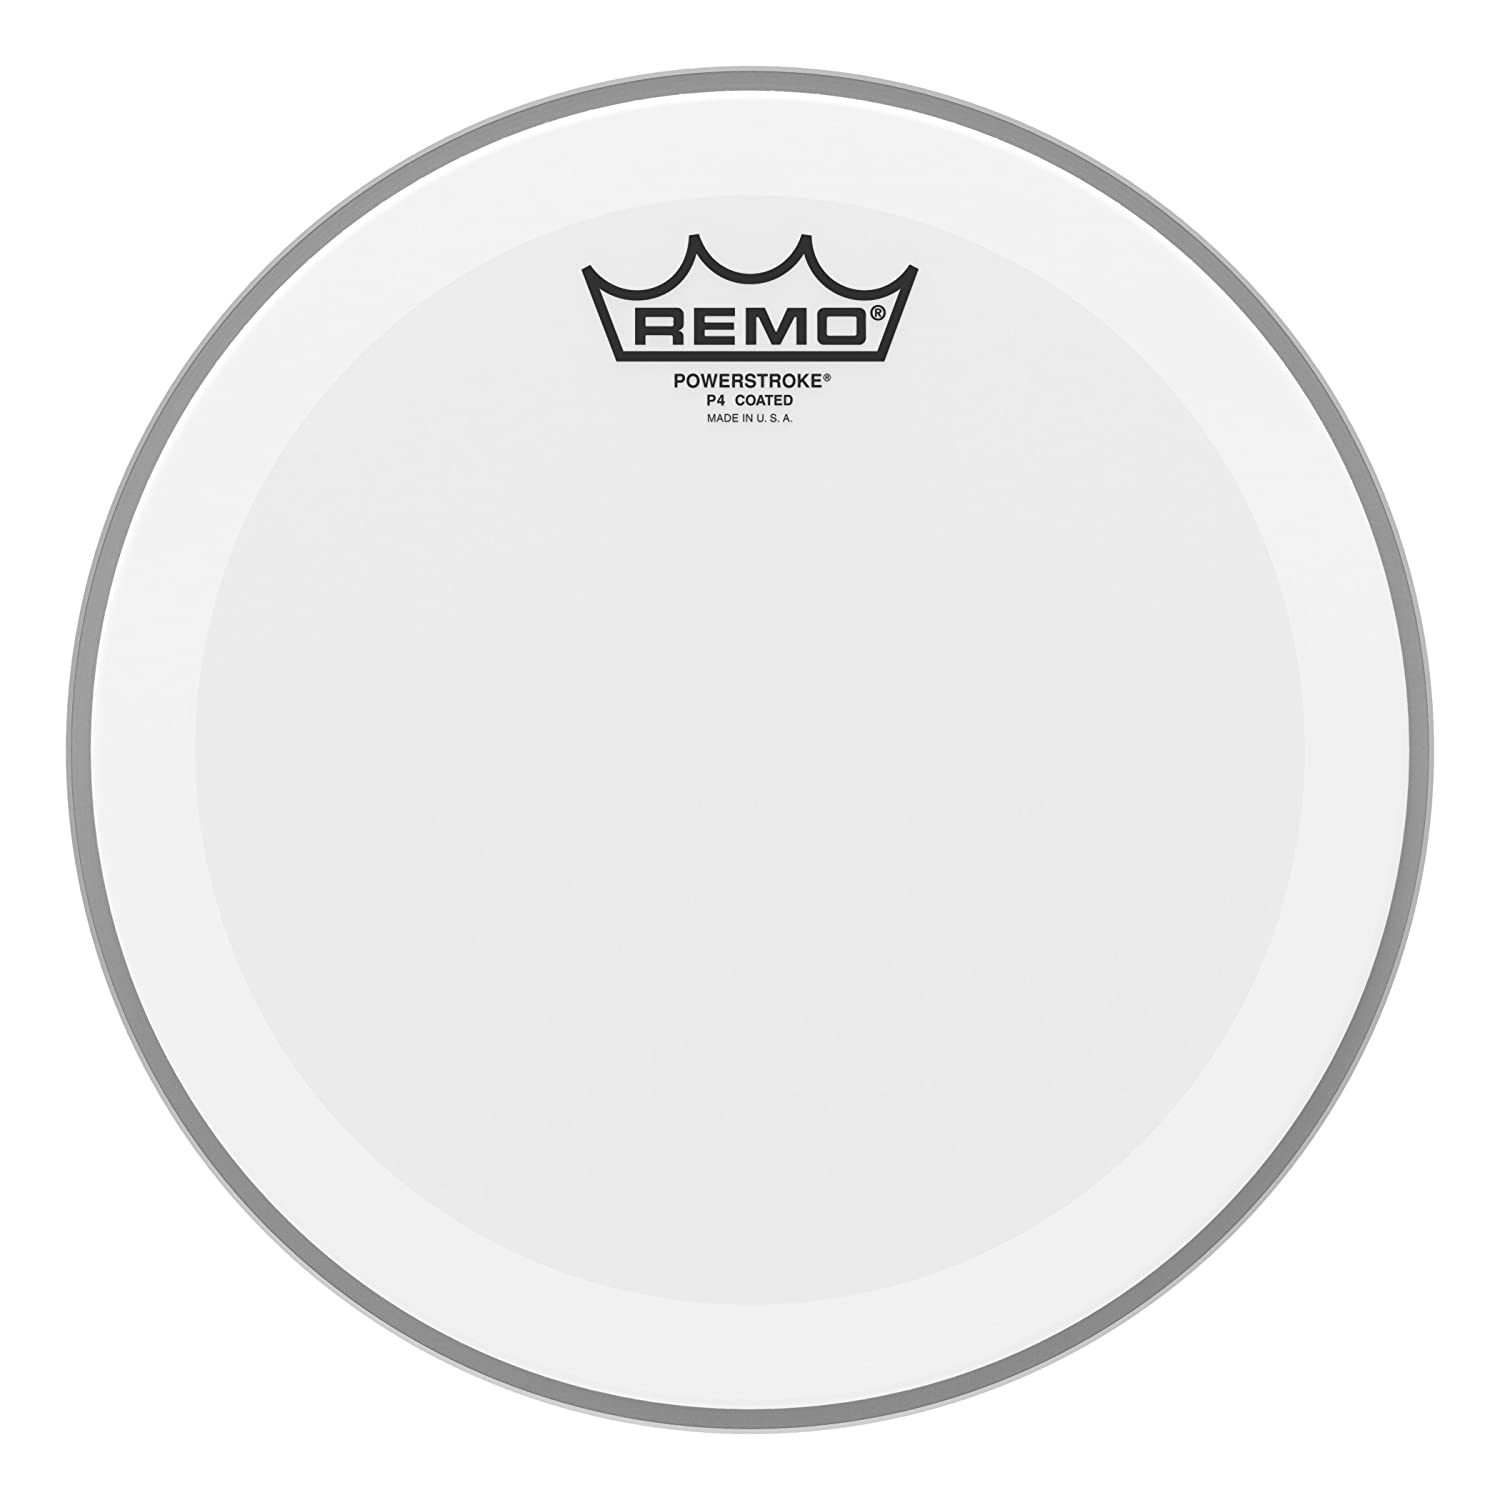 Remo Powerstroke P4 Coated Drumhead, 10